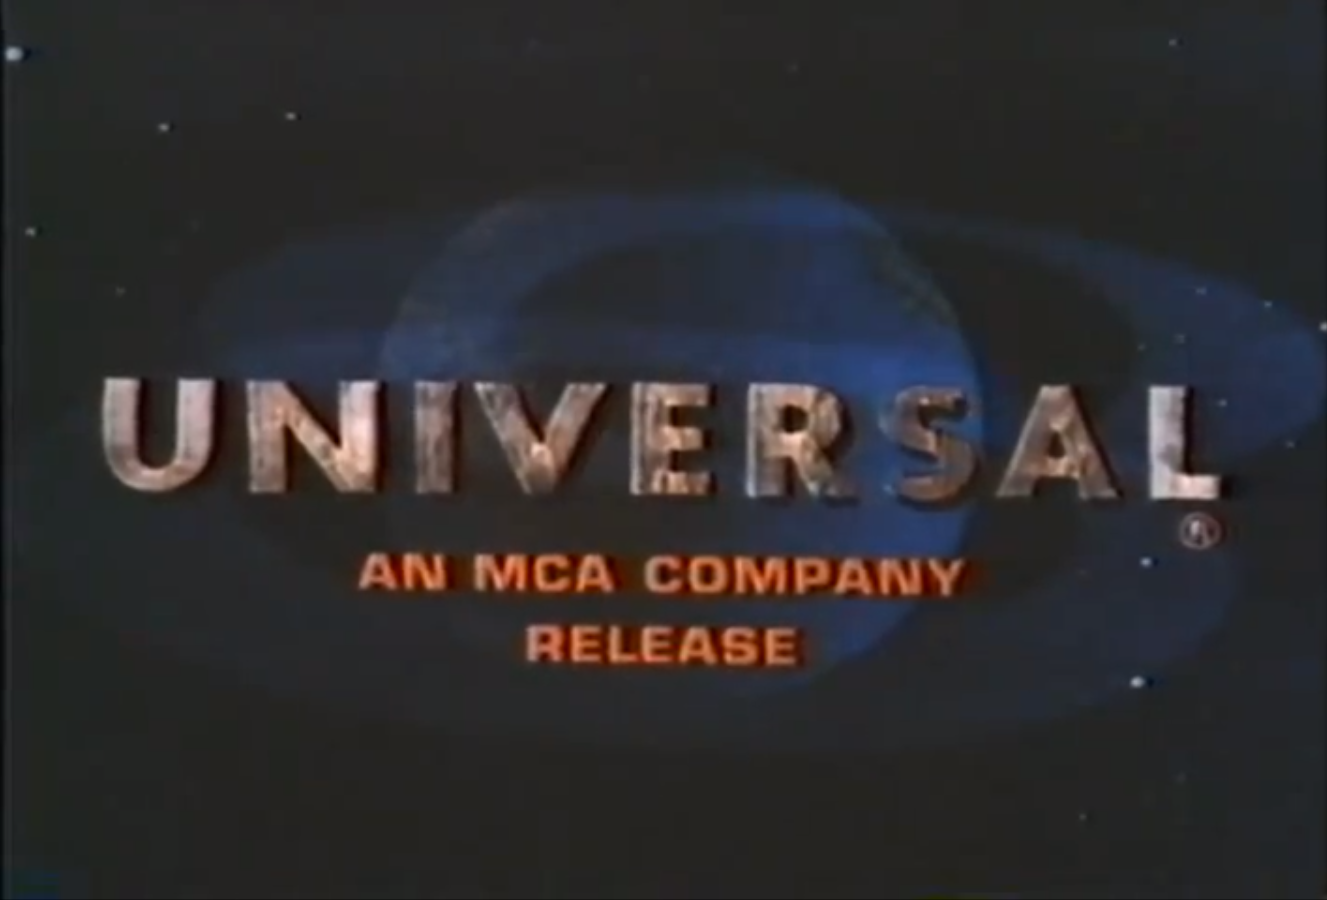 Universal Pictures Release (1983)